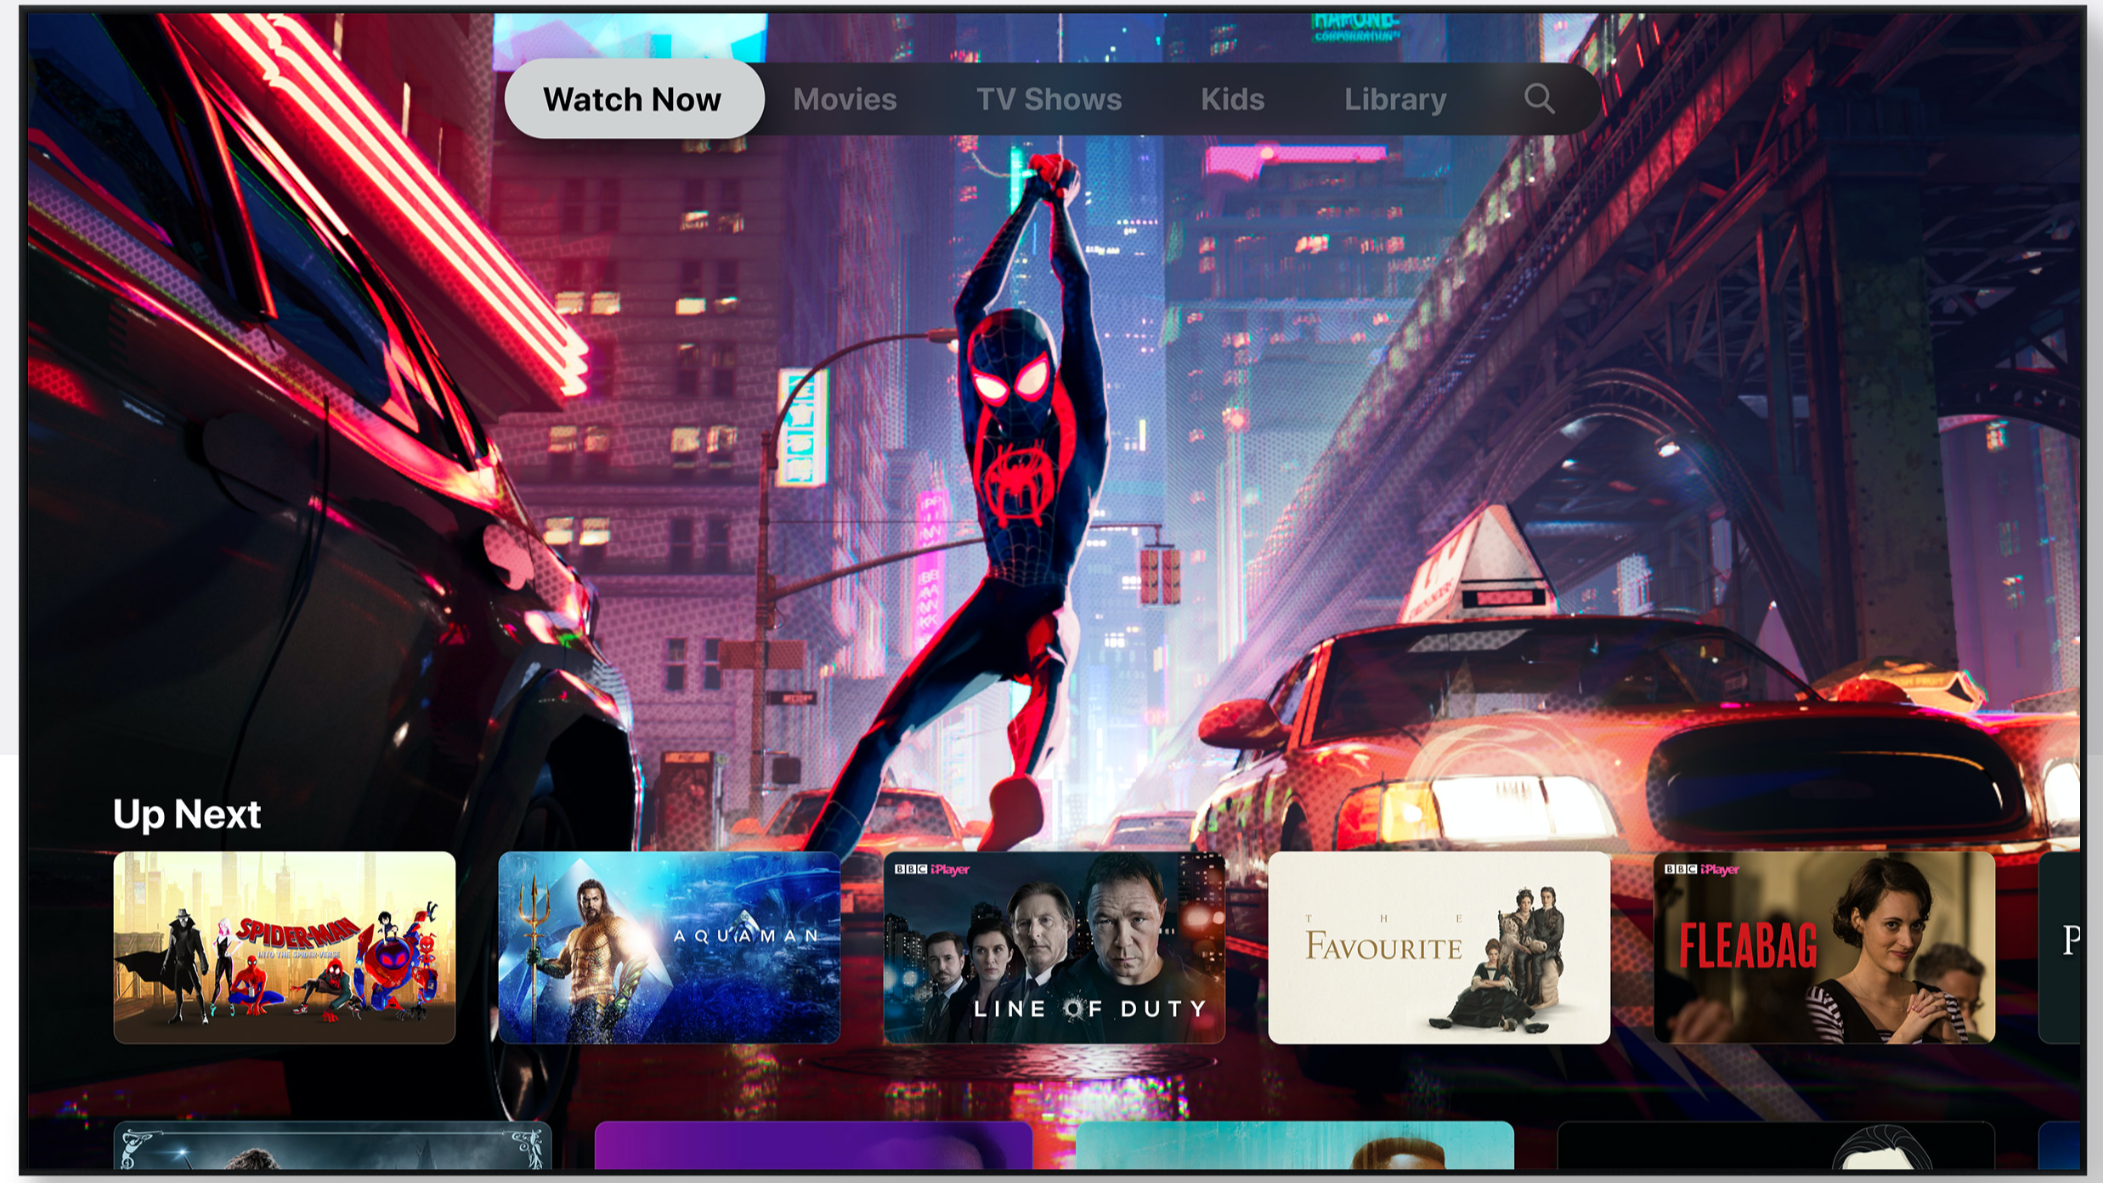 Apple TV app comes to Amazon Fire TV sticks ahead of the